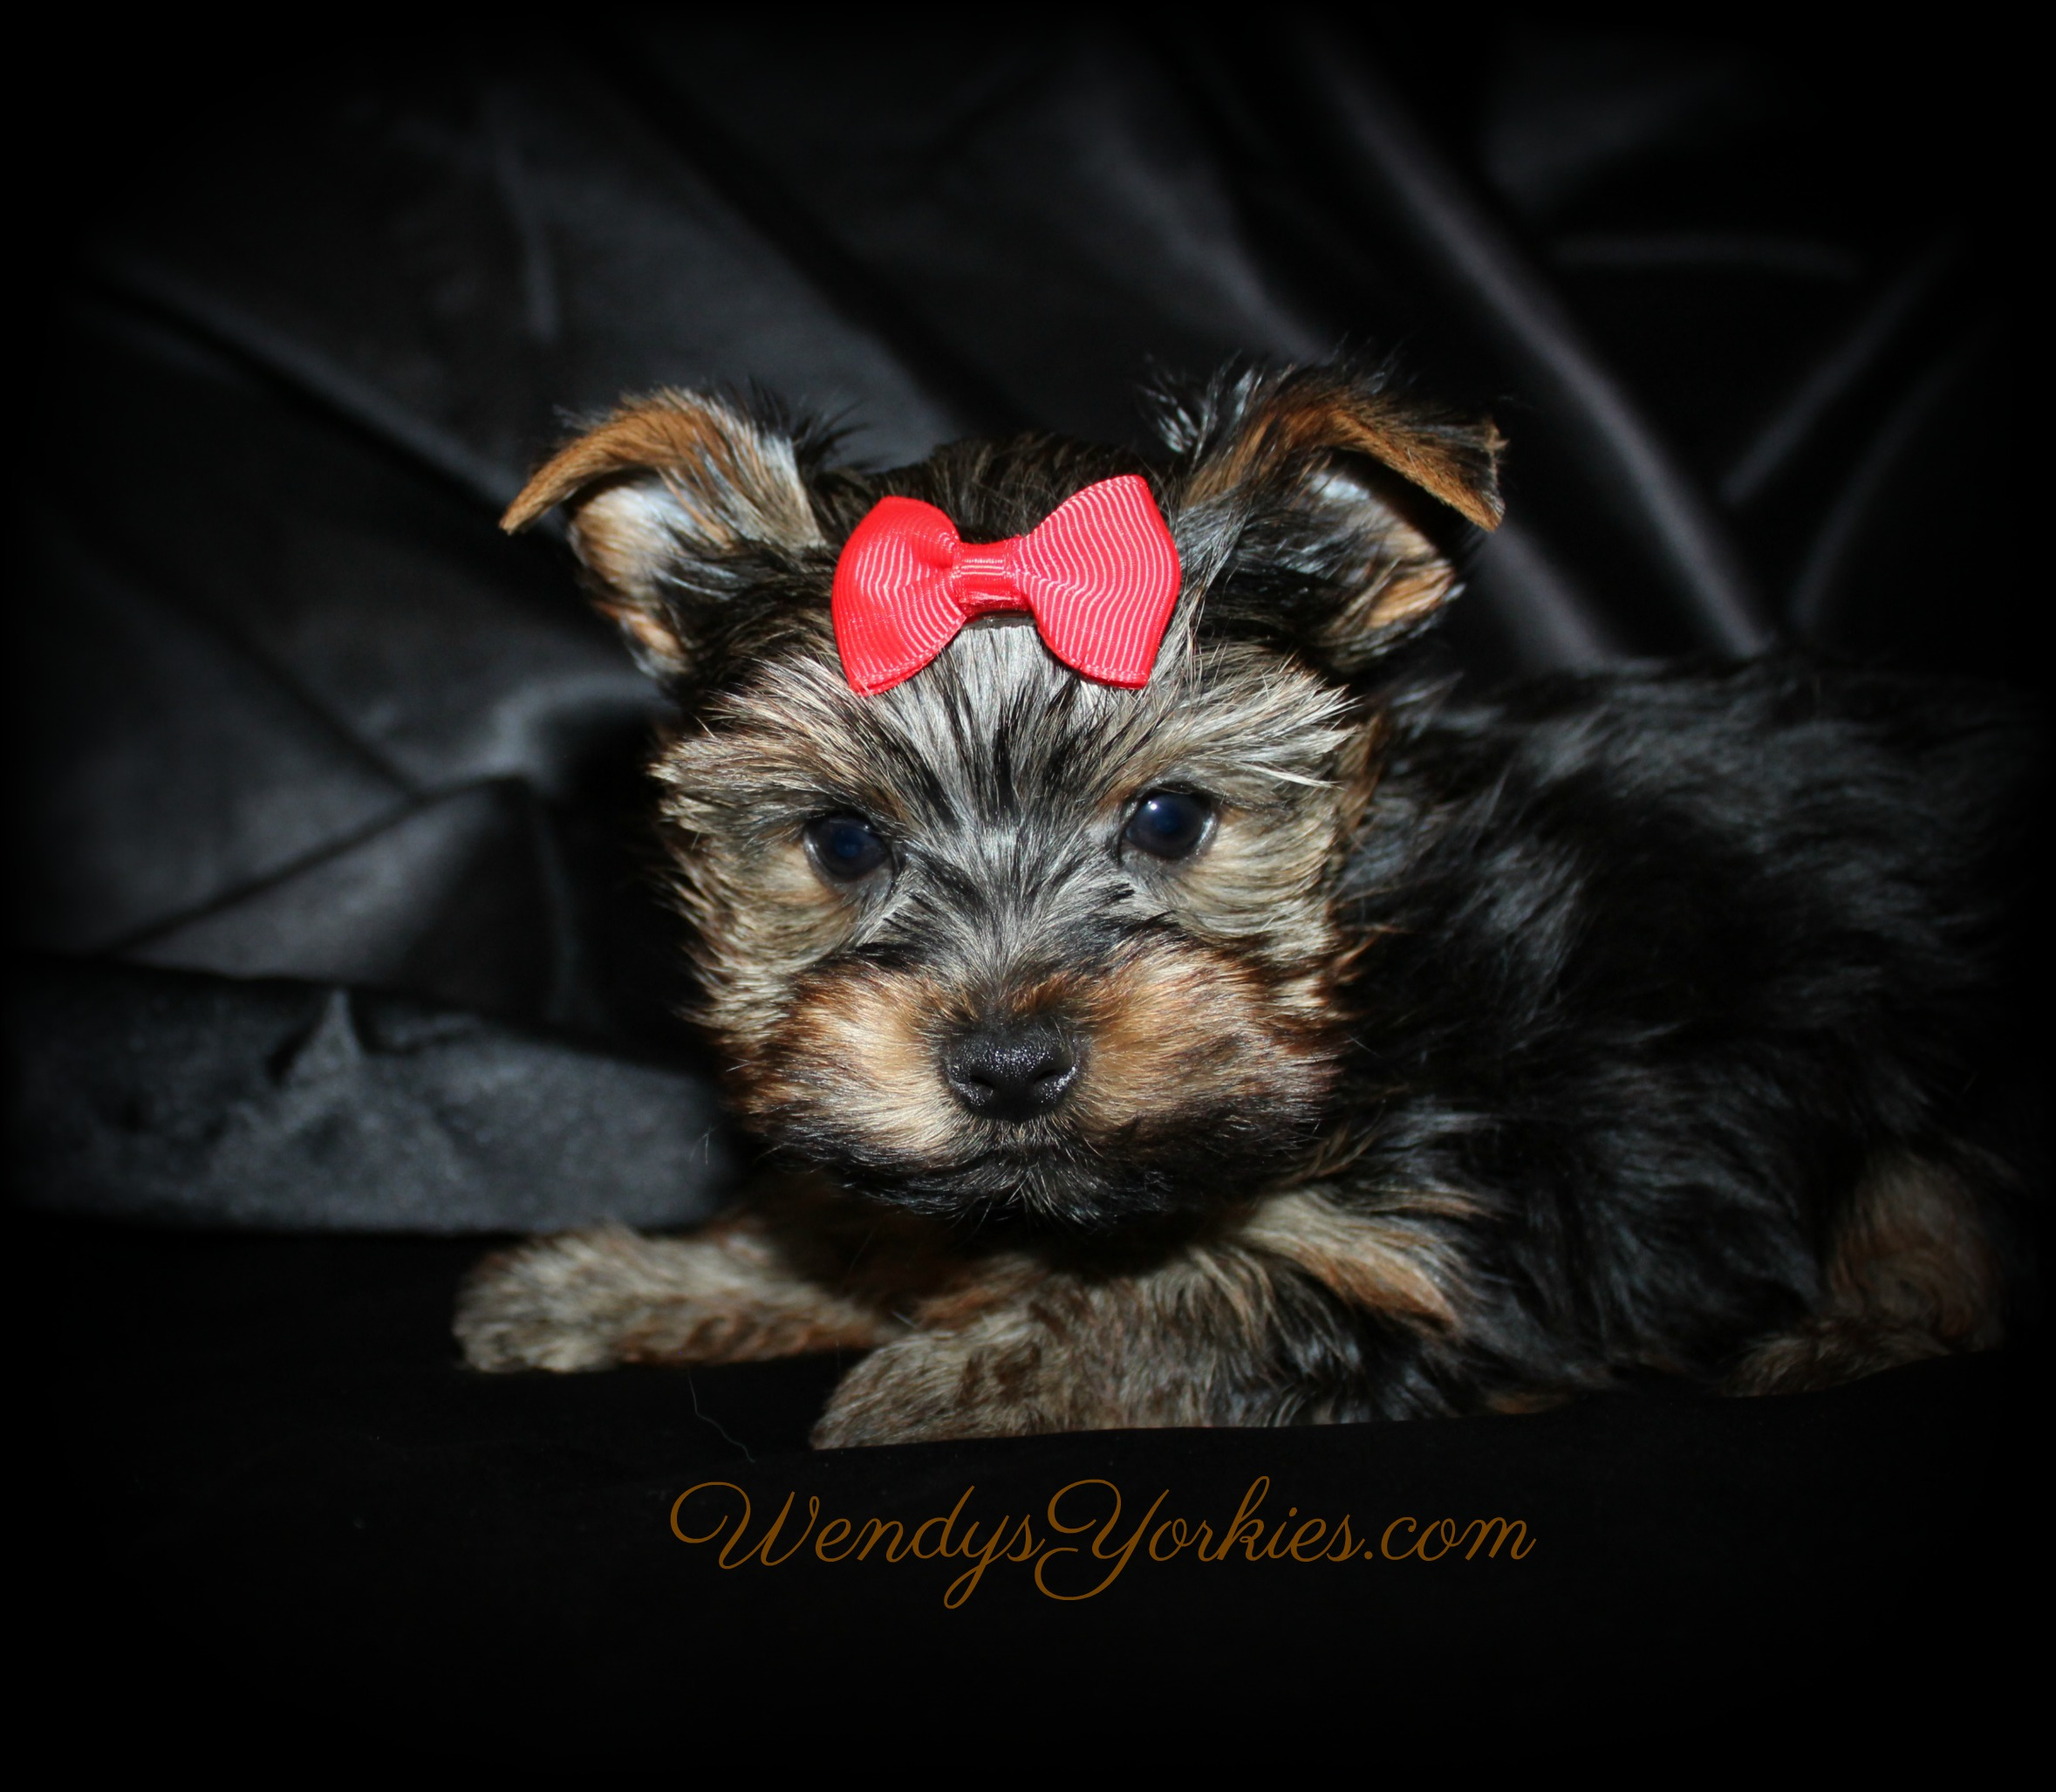 Teacup Male Yorkie puppy for sale, Mini m1, WendysYorkies.com